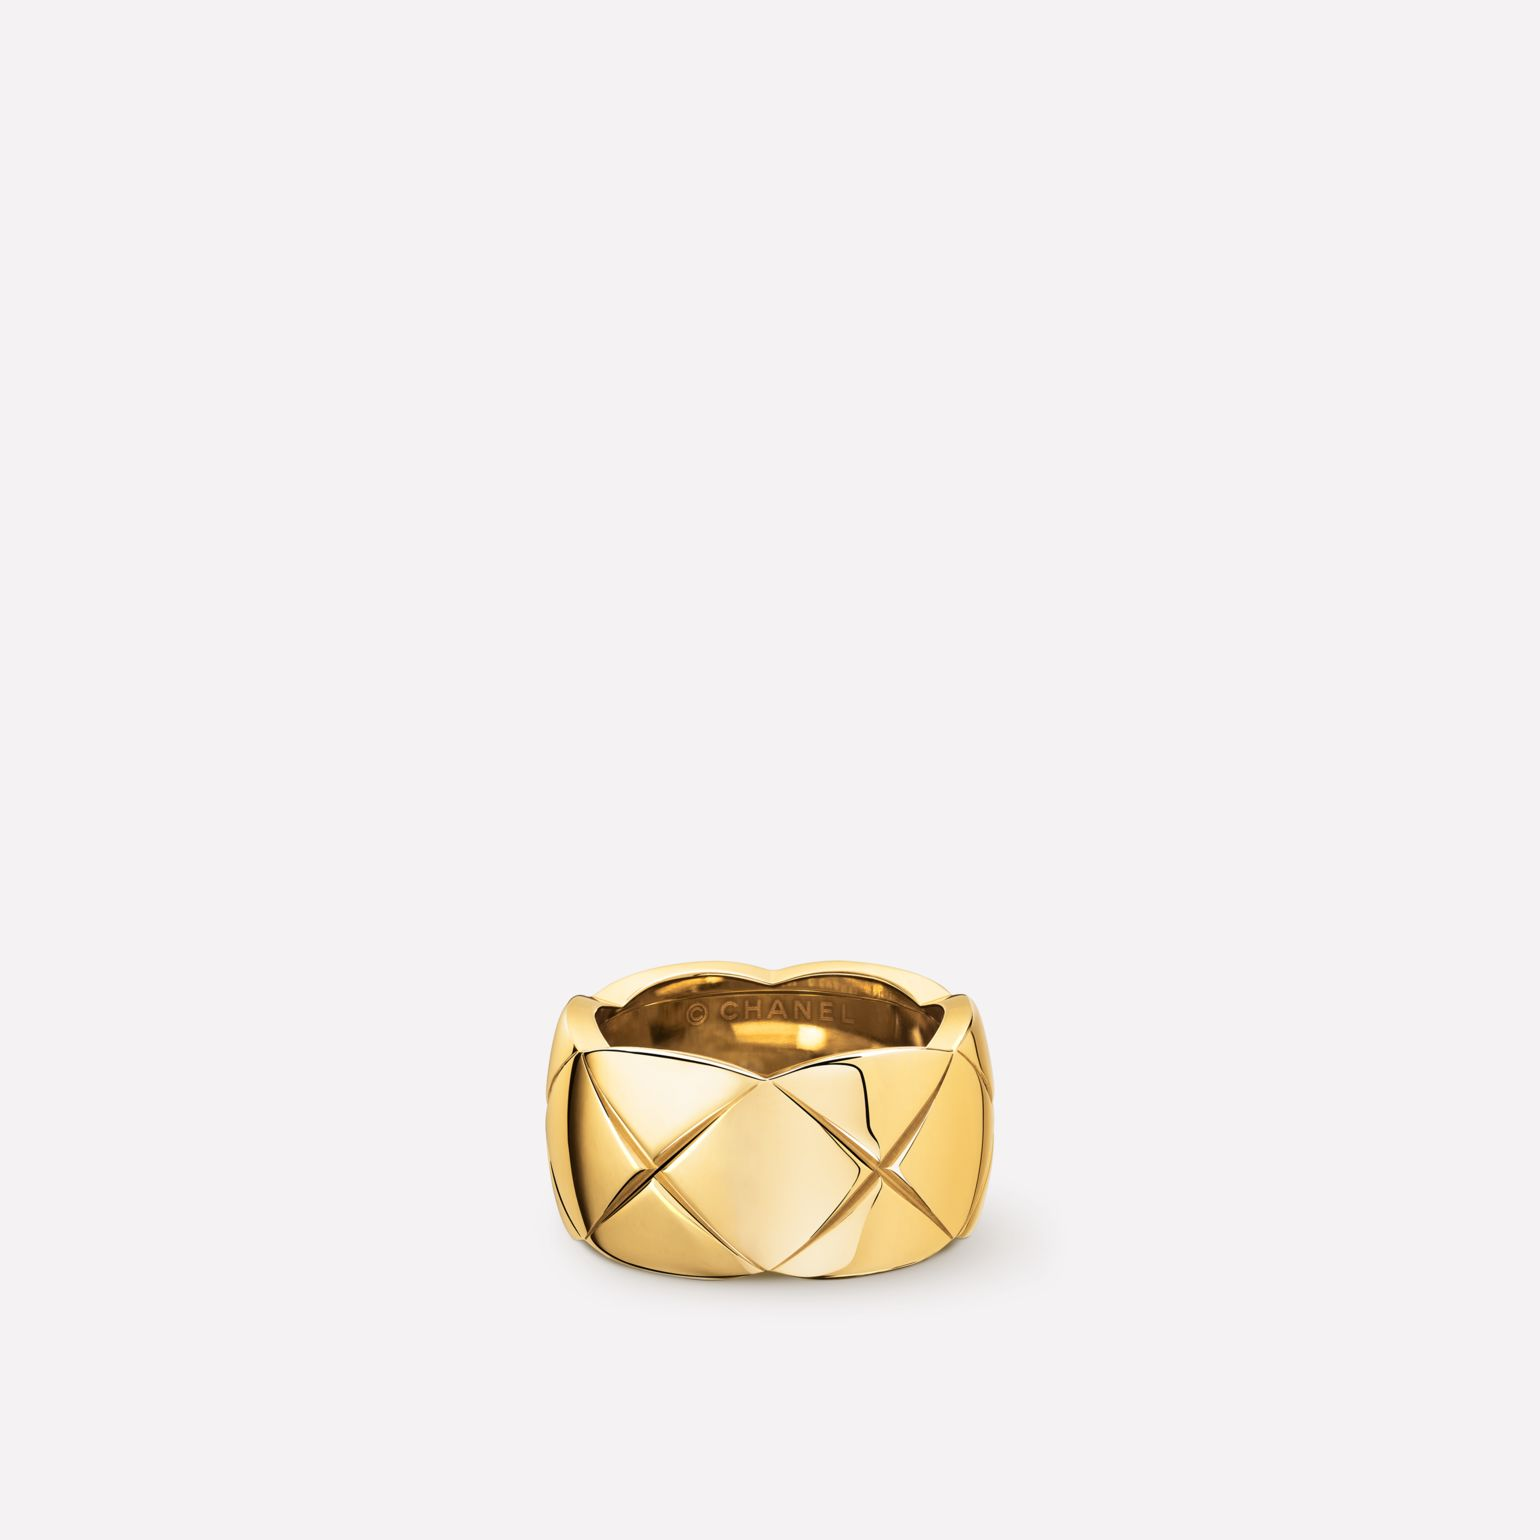 Coco Crush ring Quilted motif ring, medium version, in 18K yellow gold